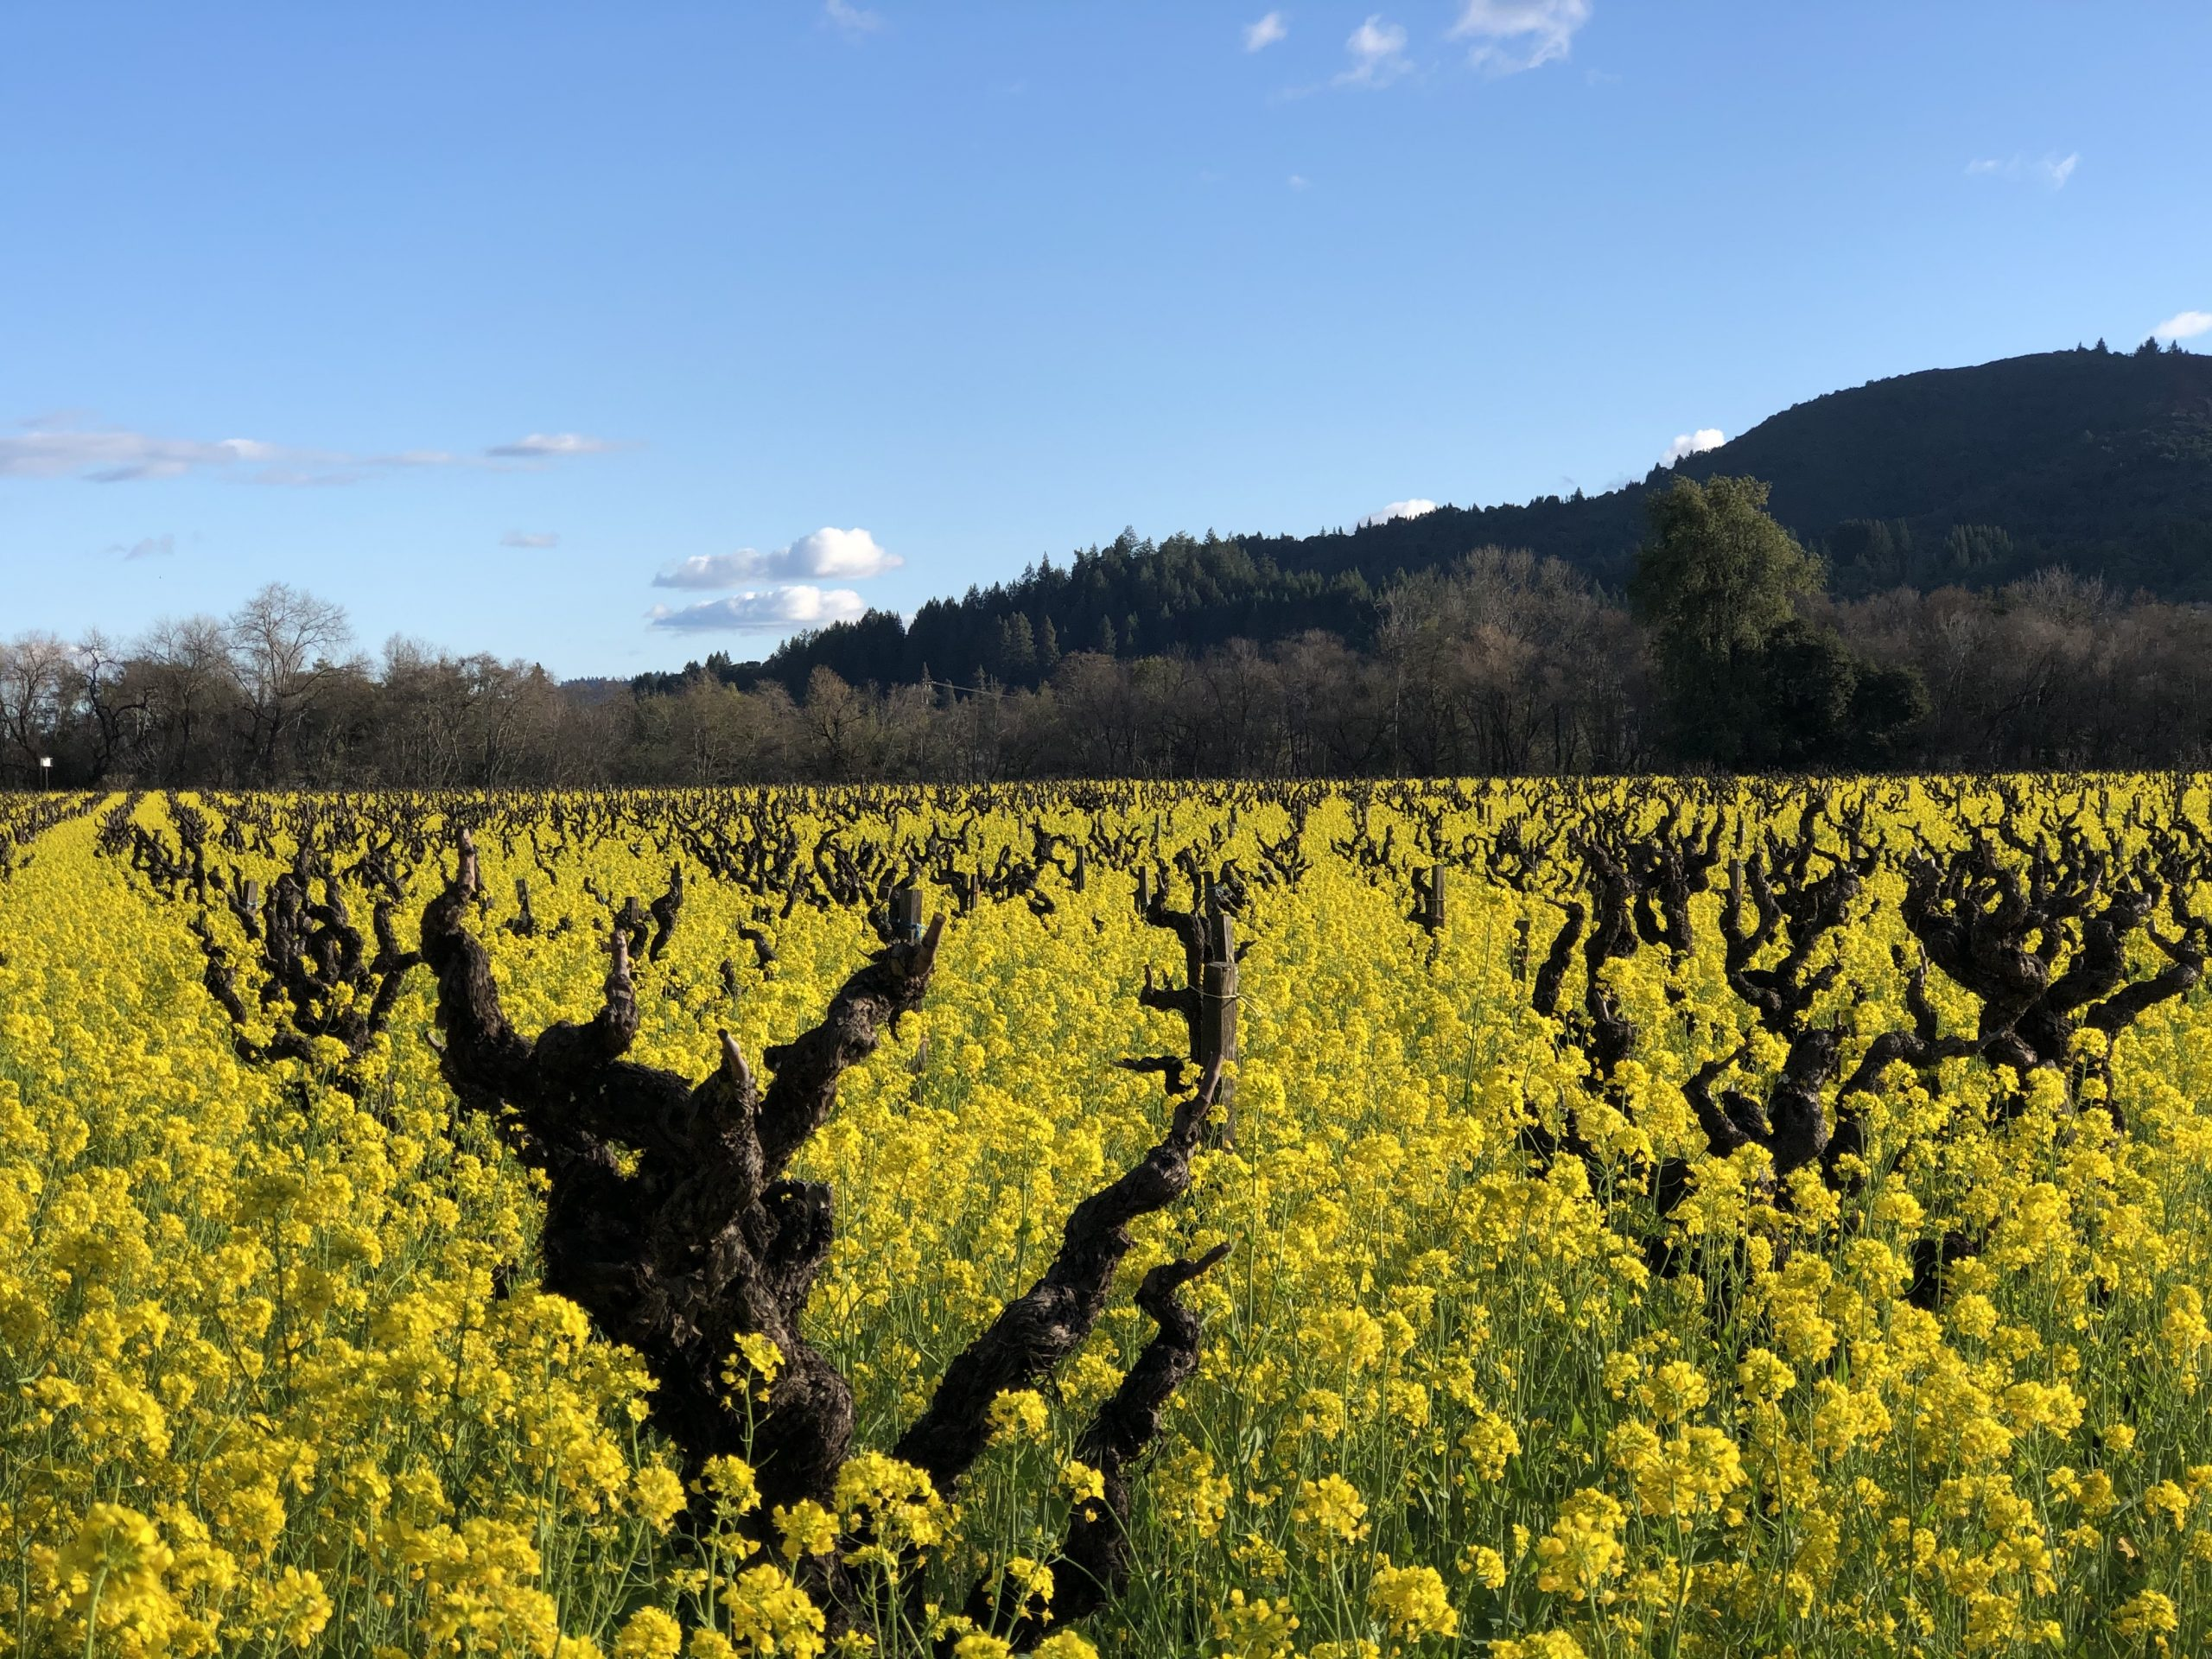 Old Vine vineyard surrounded by mustard